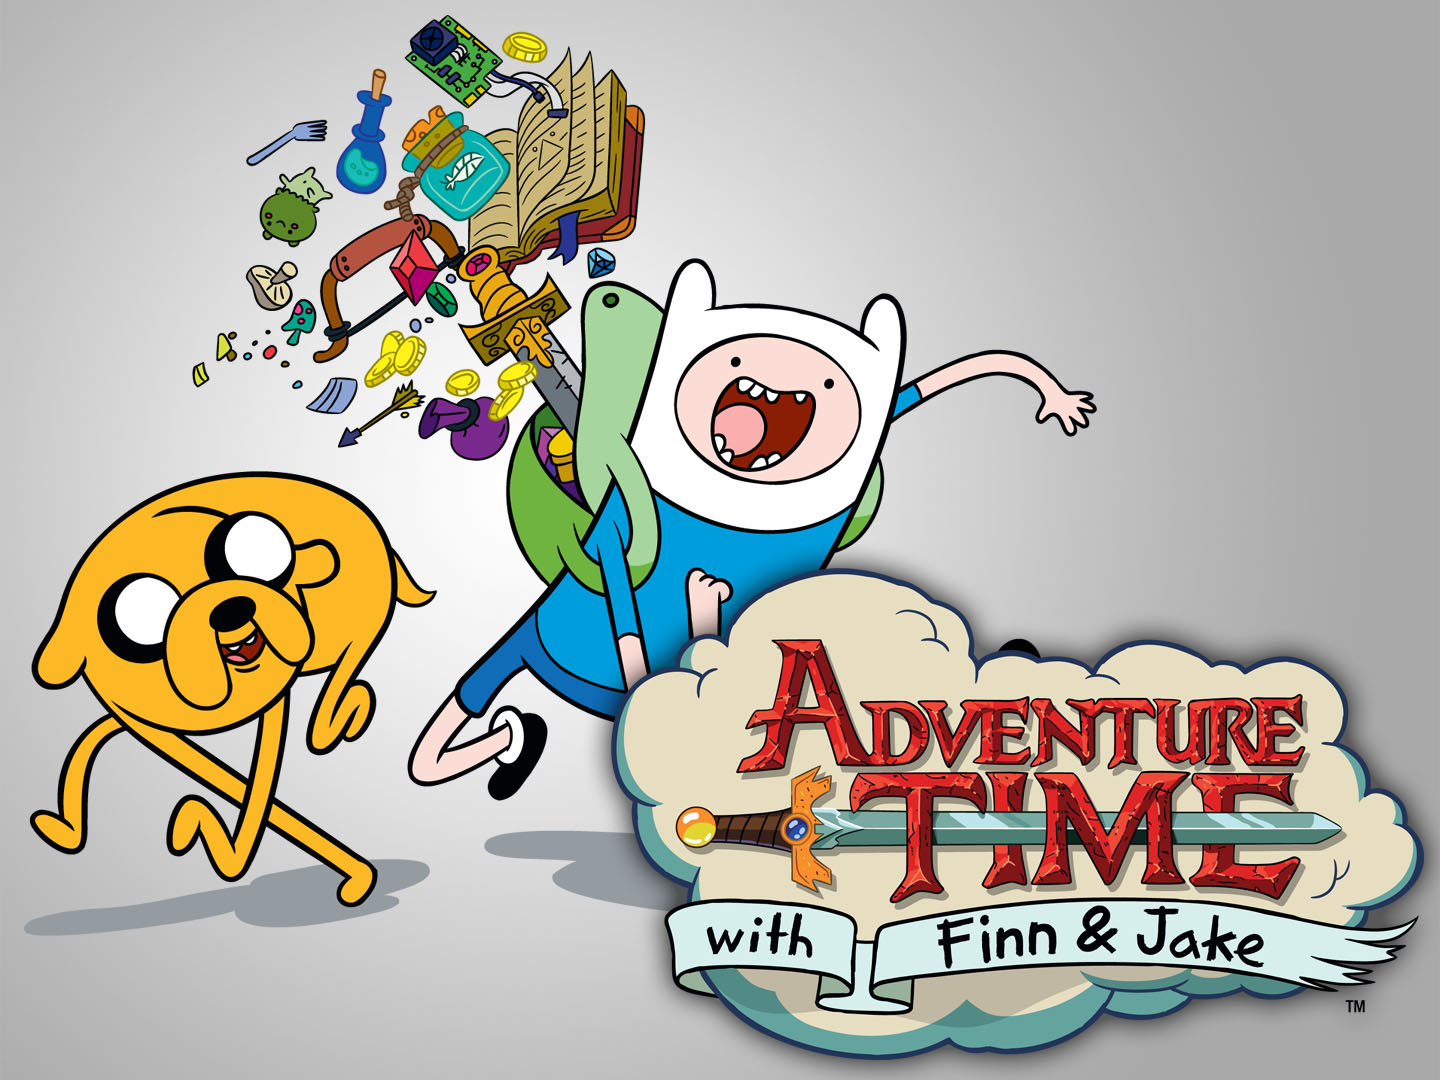 Adventure-Time-hd-wallpapers.jpg